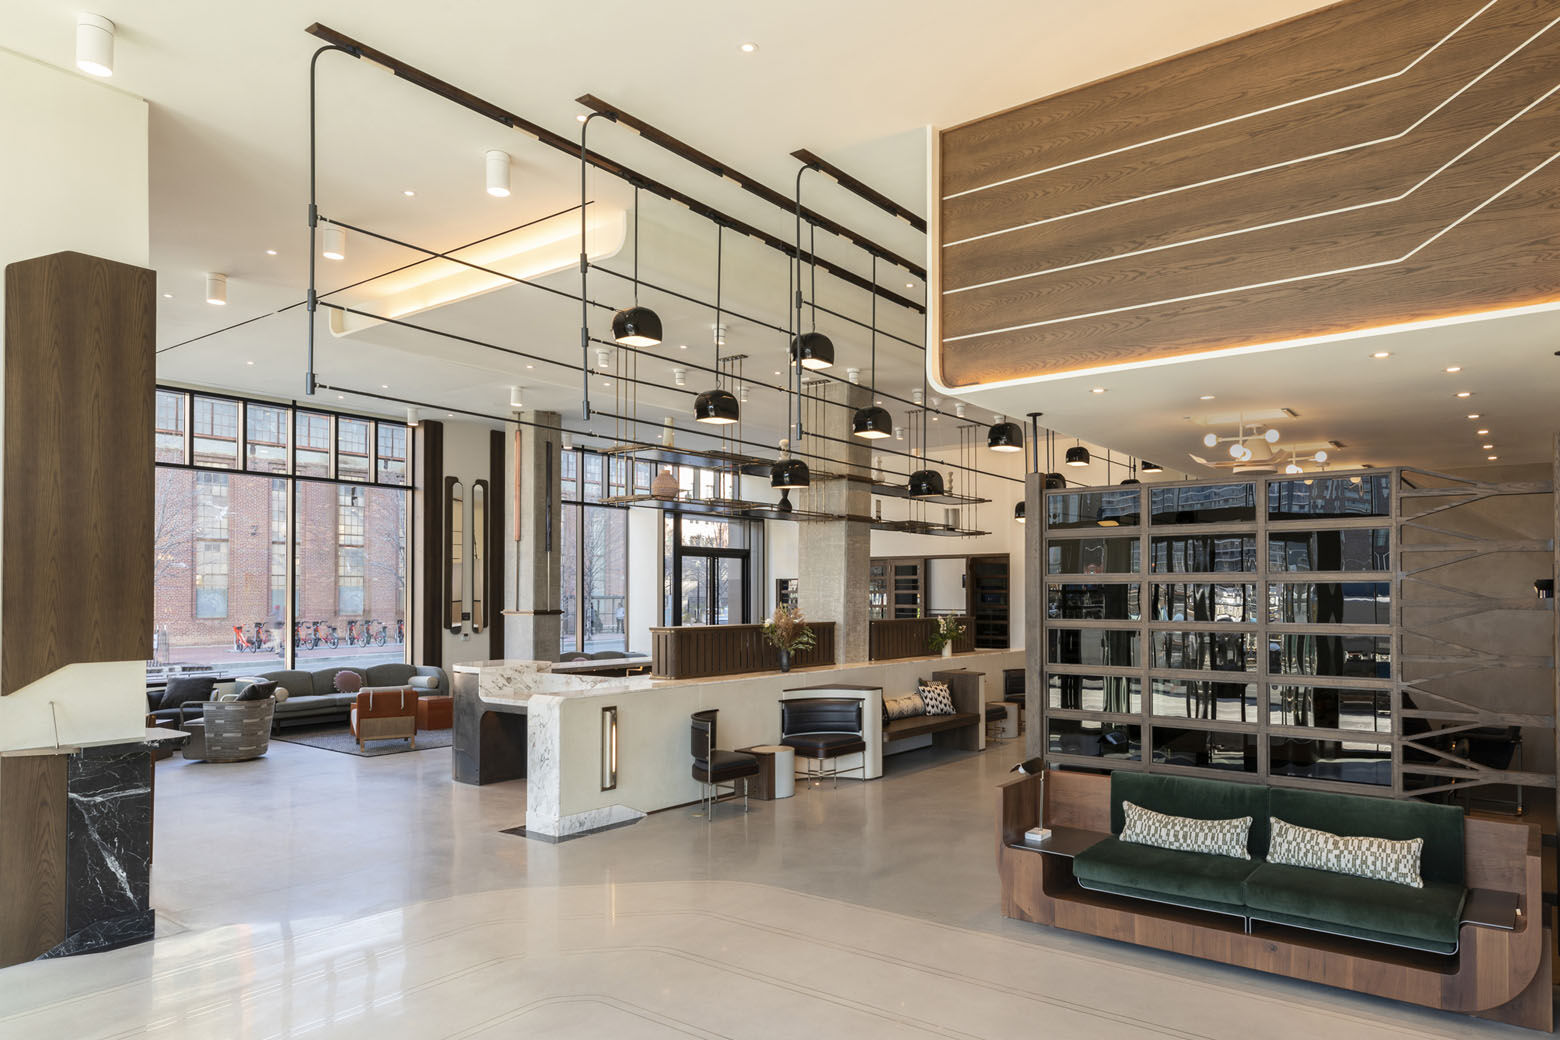 Thompson Washington D.C. occupies a newly built 11-story building, and its rooms features floor-to-ceiling windows and views of the Anacostia River and Nationals Park.